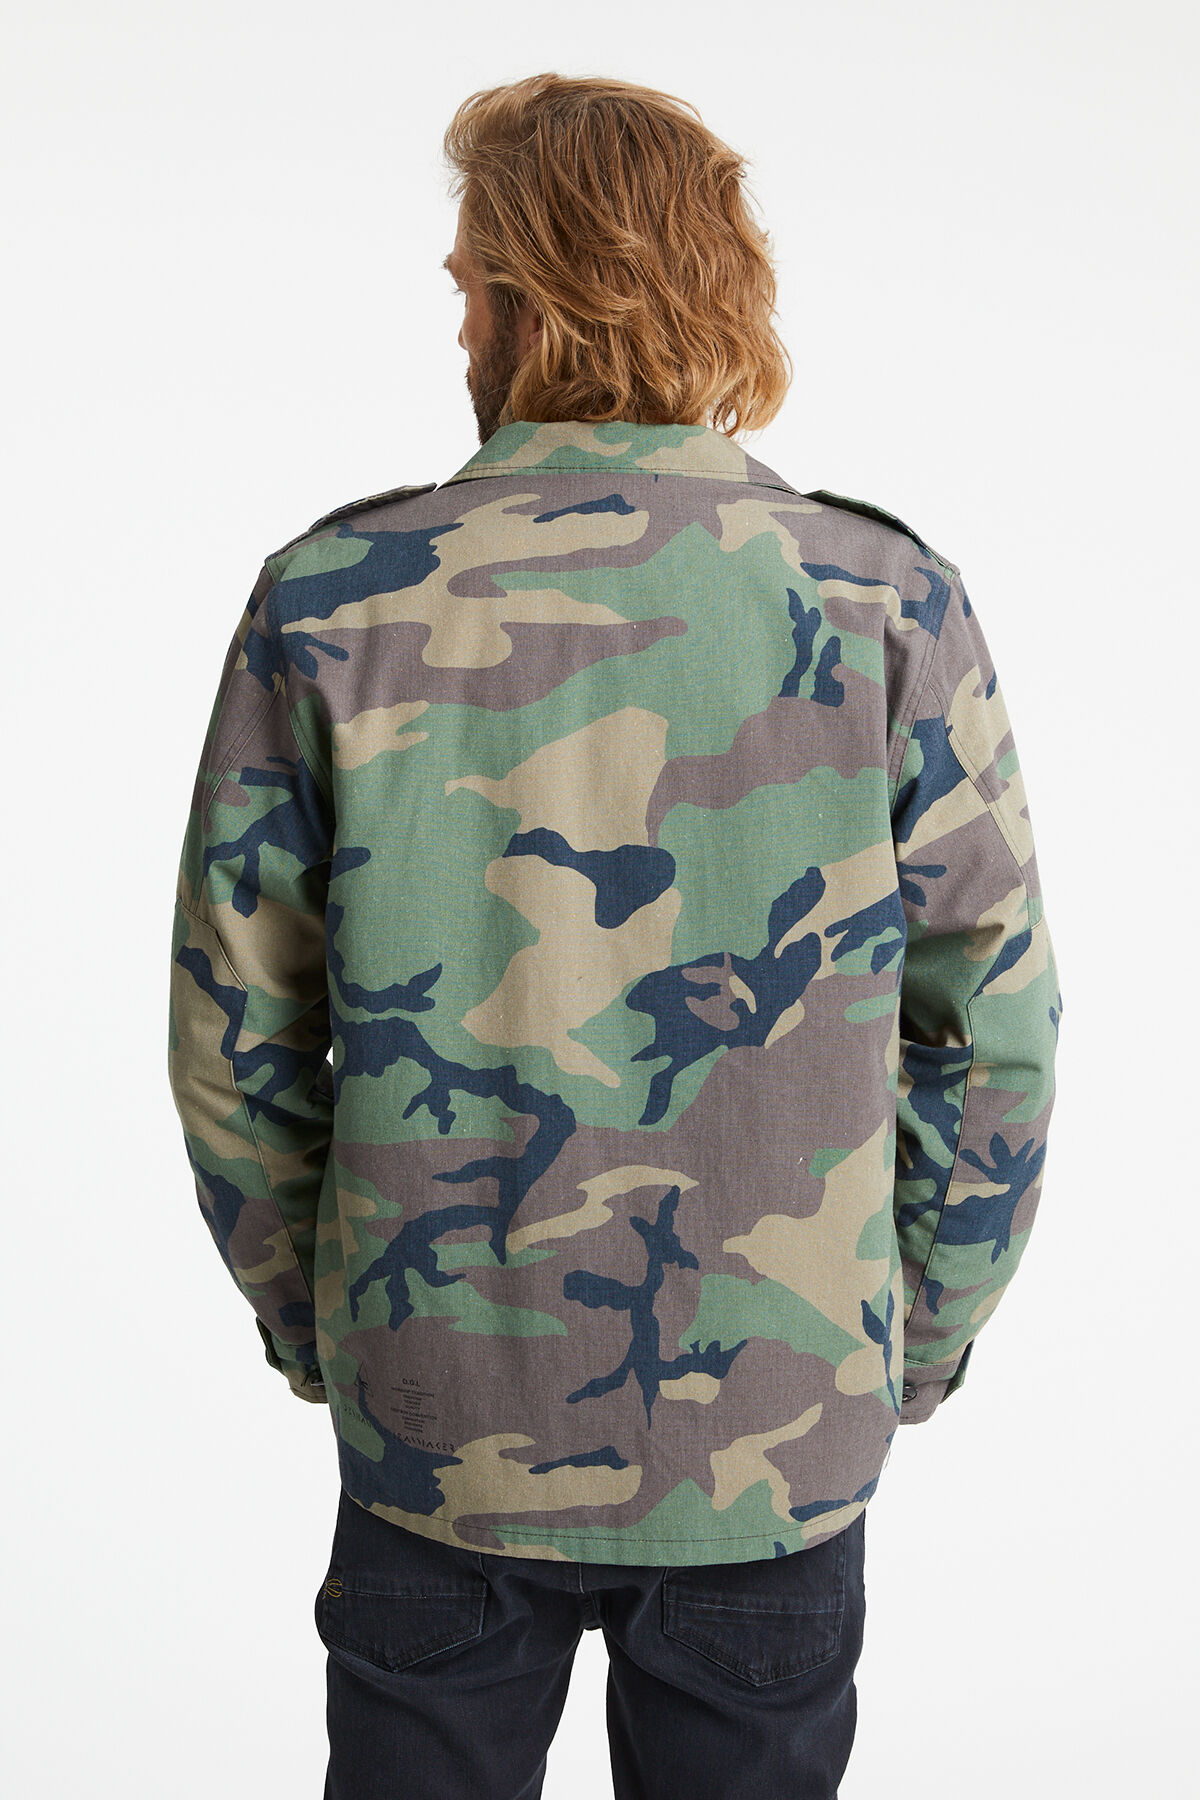 AINSLEY COMBAT JACKET Camouflage Print - Boxy Fit